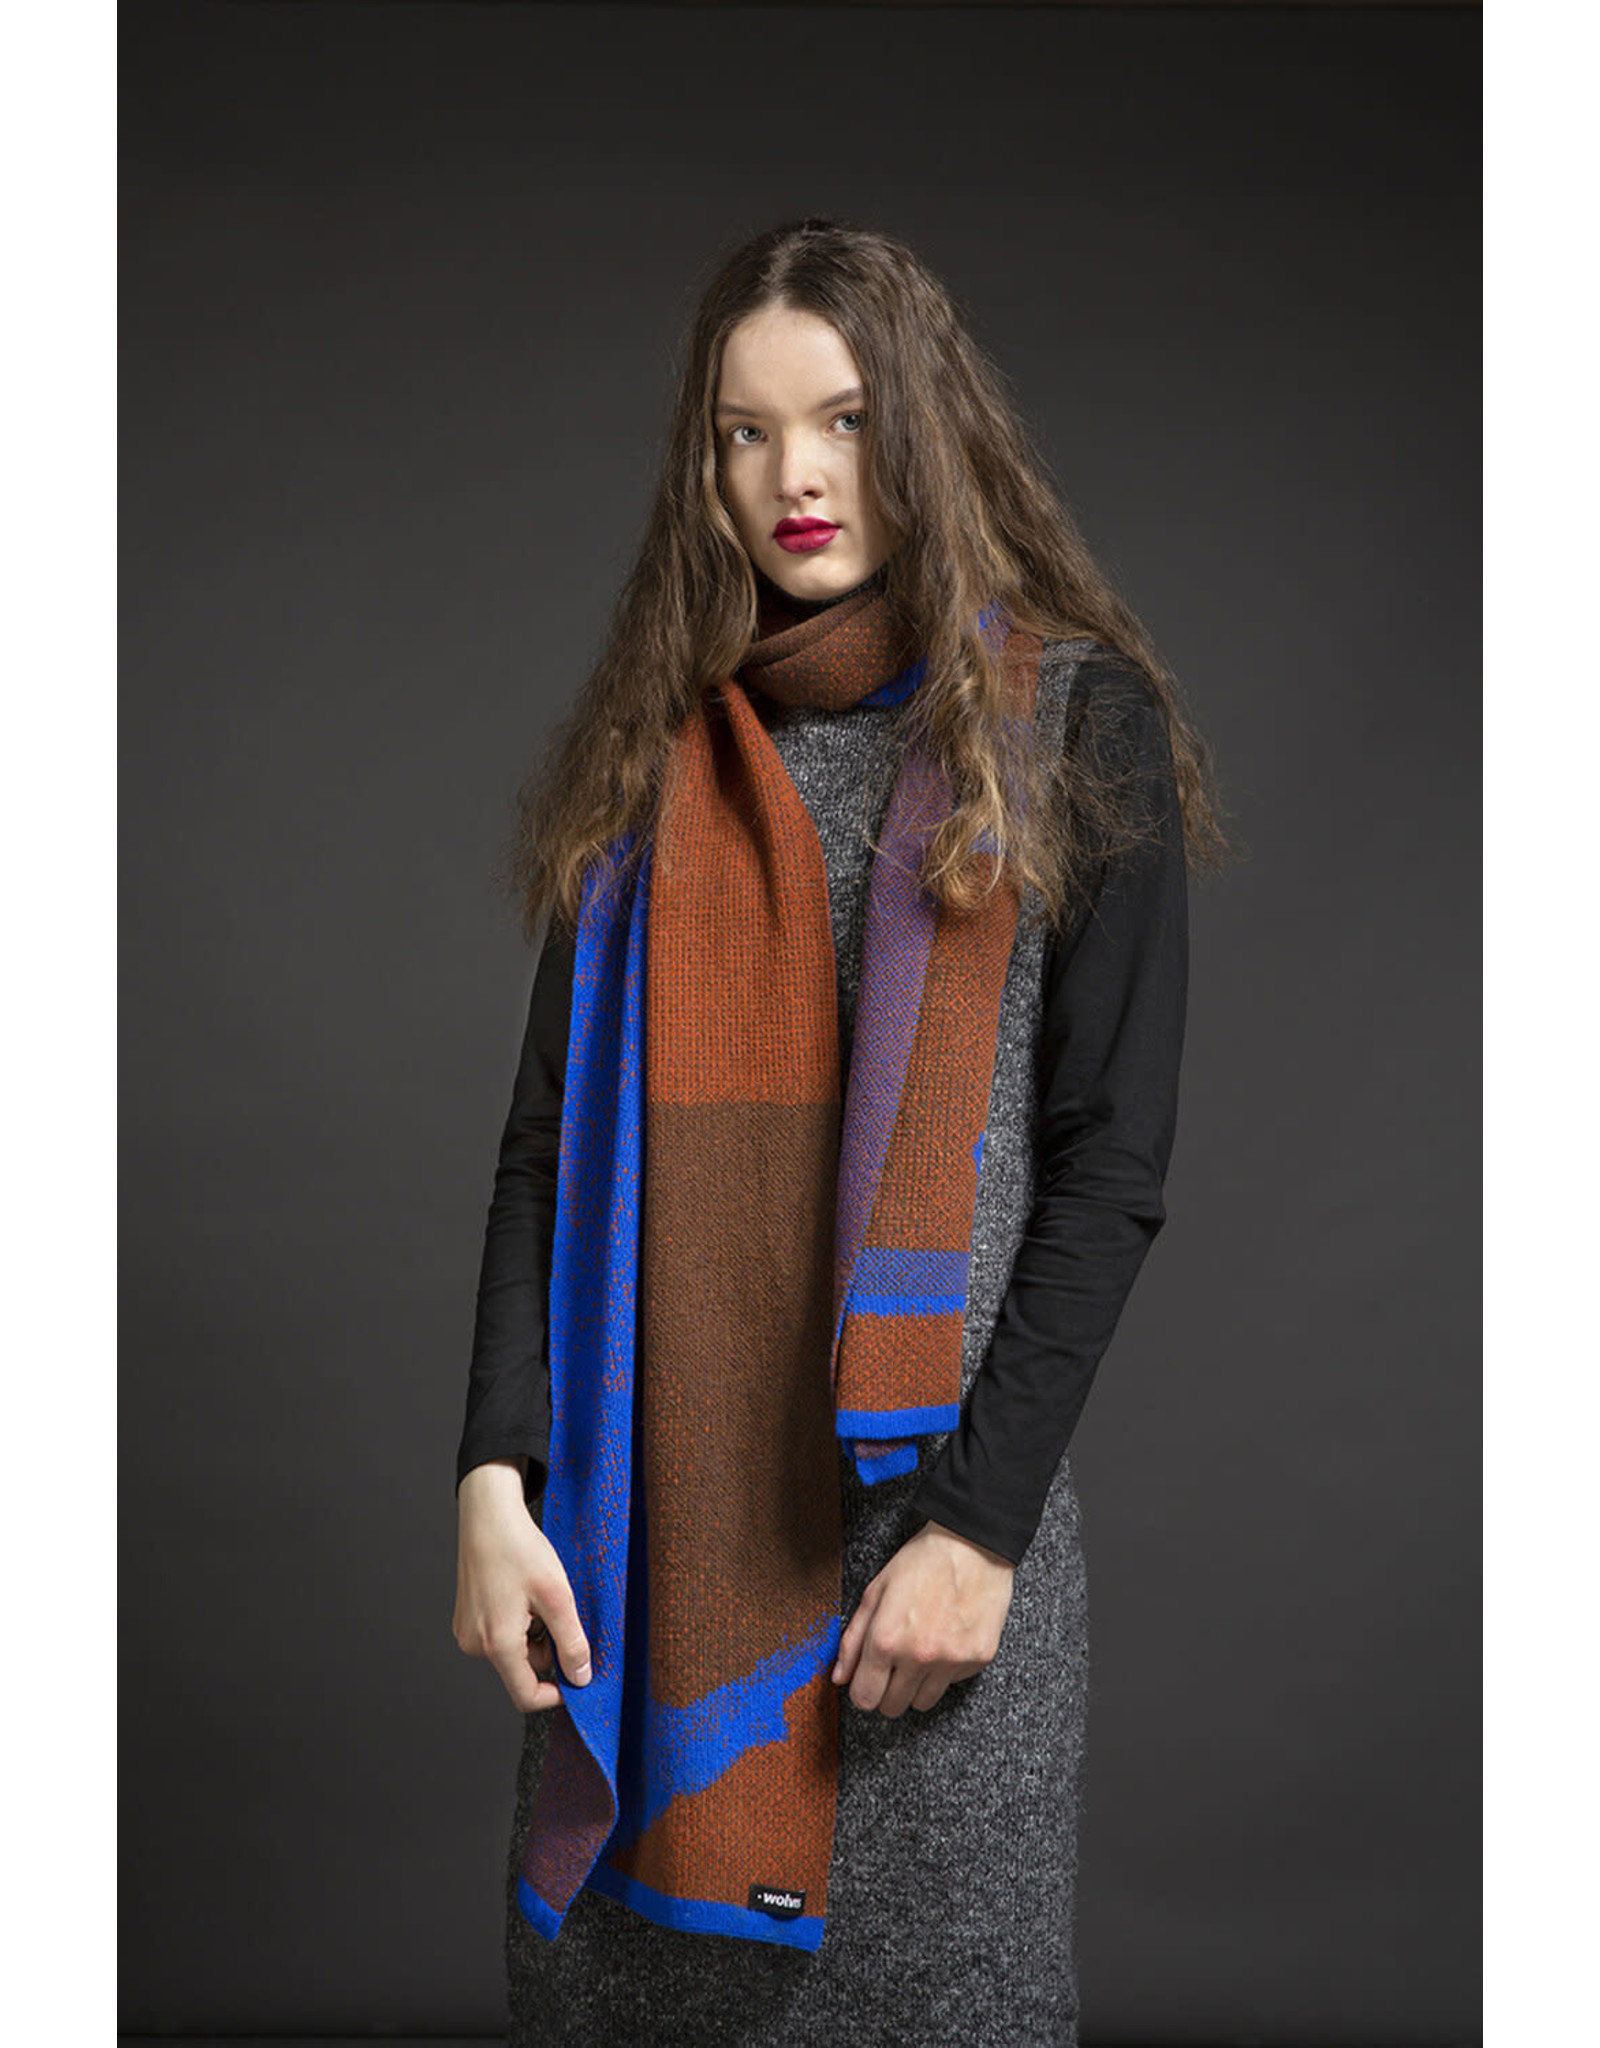 Wolvis Wolvis - 5th of October 2018 - Electric Blue, Cognac and Sepia  - 220cm x 40 - 100% Merino Wool - 100% made in Belgium